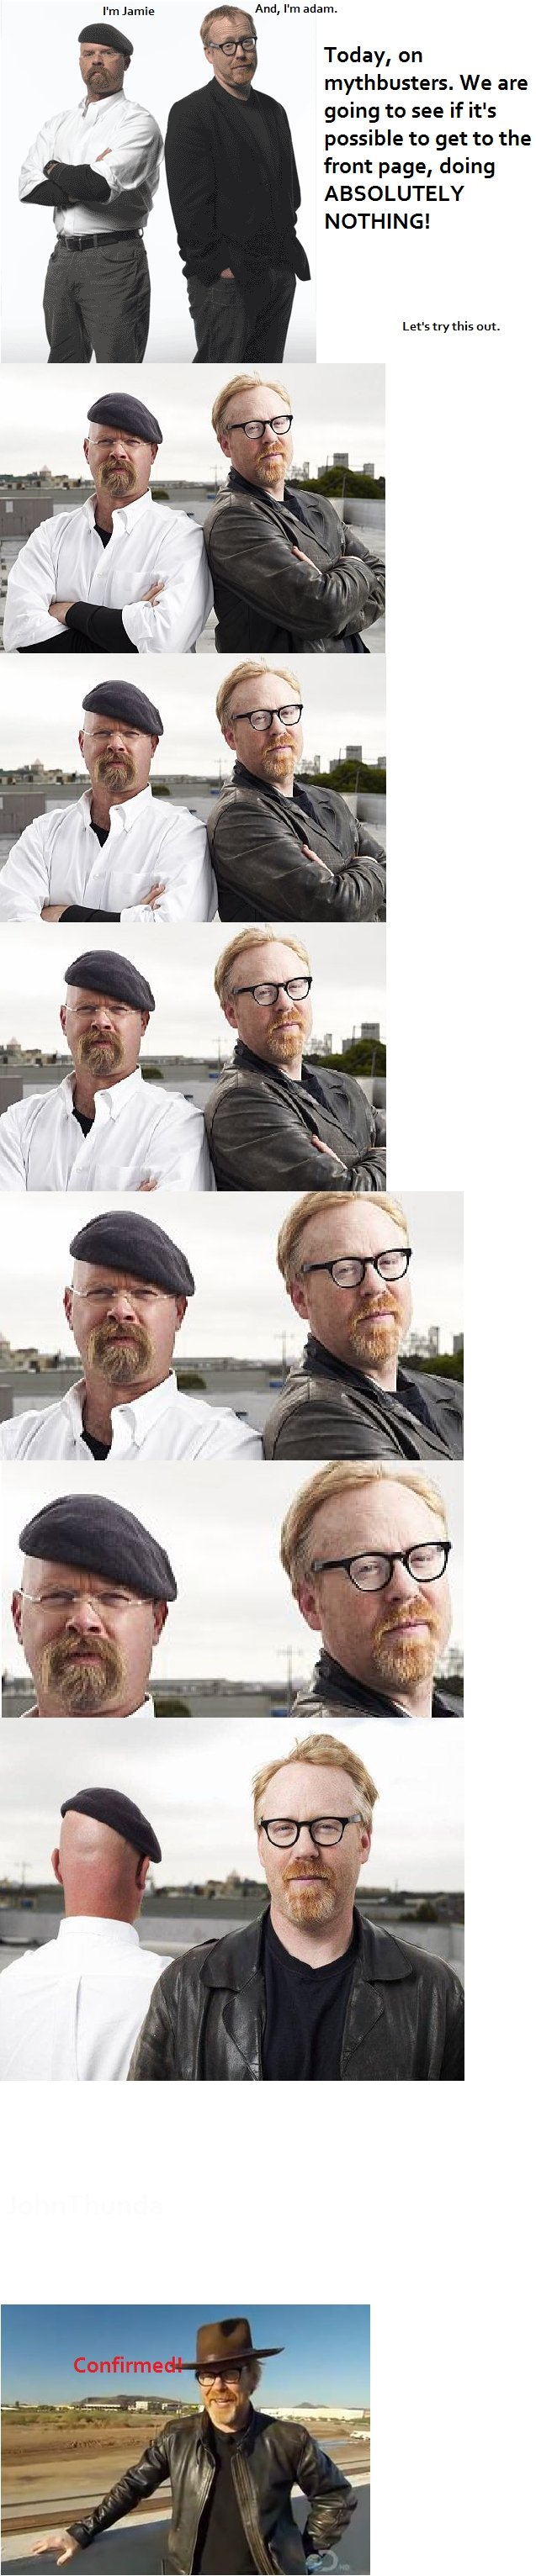 Today On Mythbusters. hi.. Ami, l' madam. Today, an mythbuster We are going to see if it' s possible to get to the front page, doing ABSOLUTELY NOTHING! Let' s